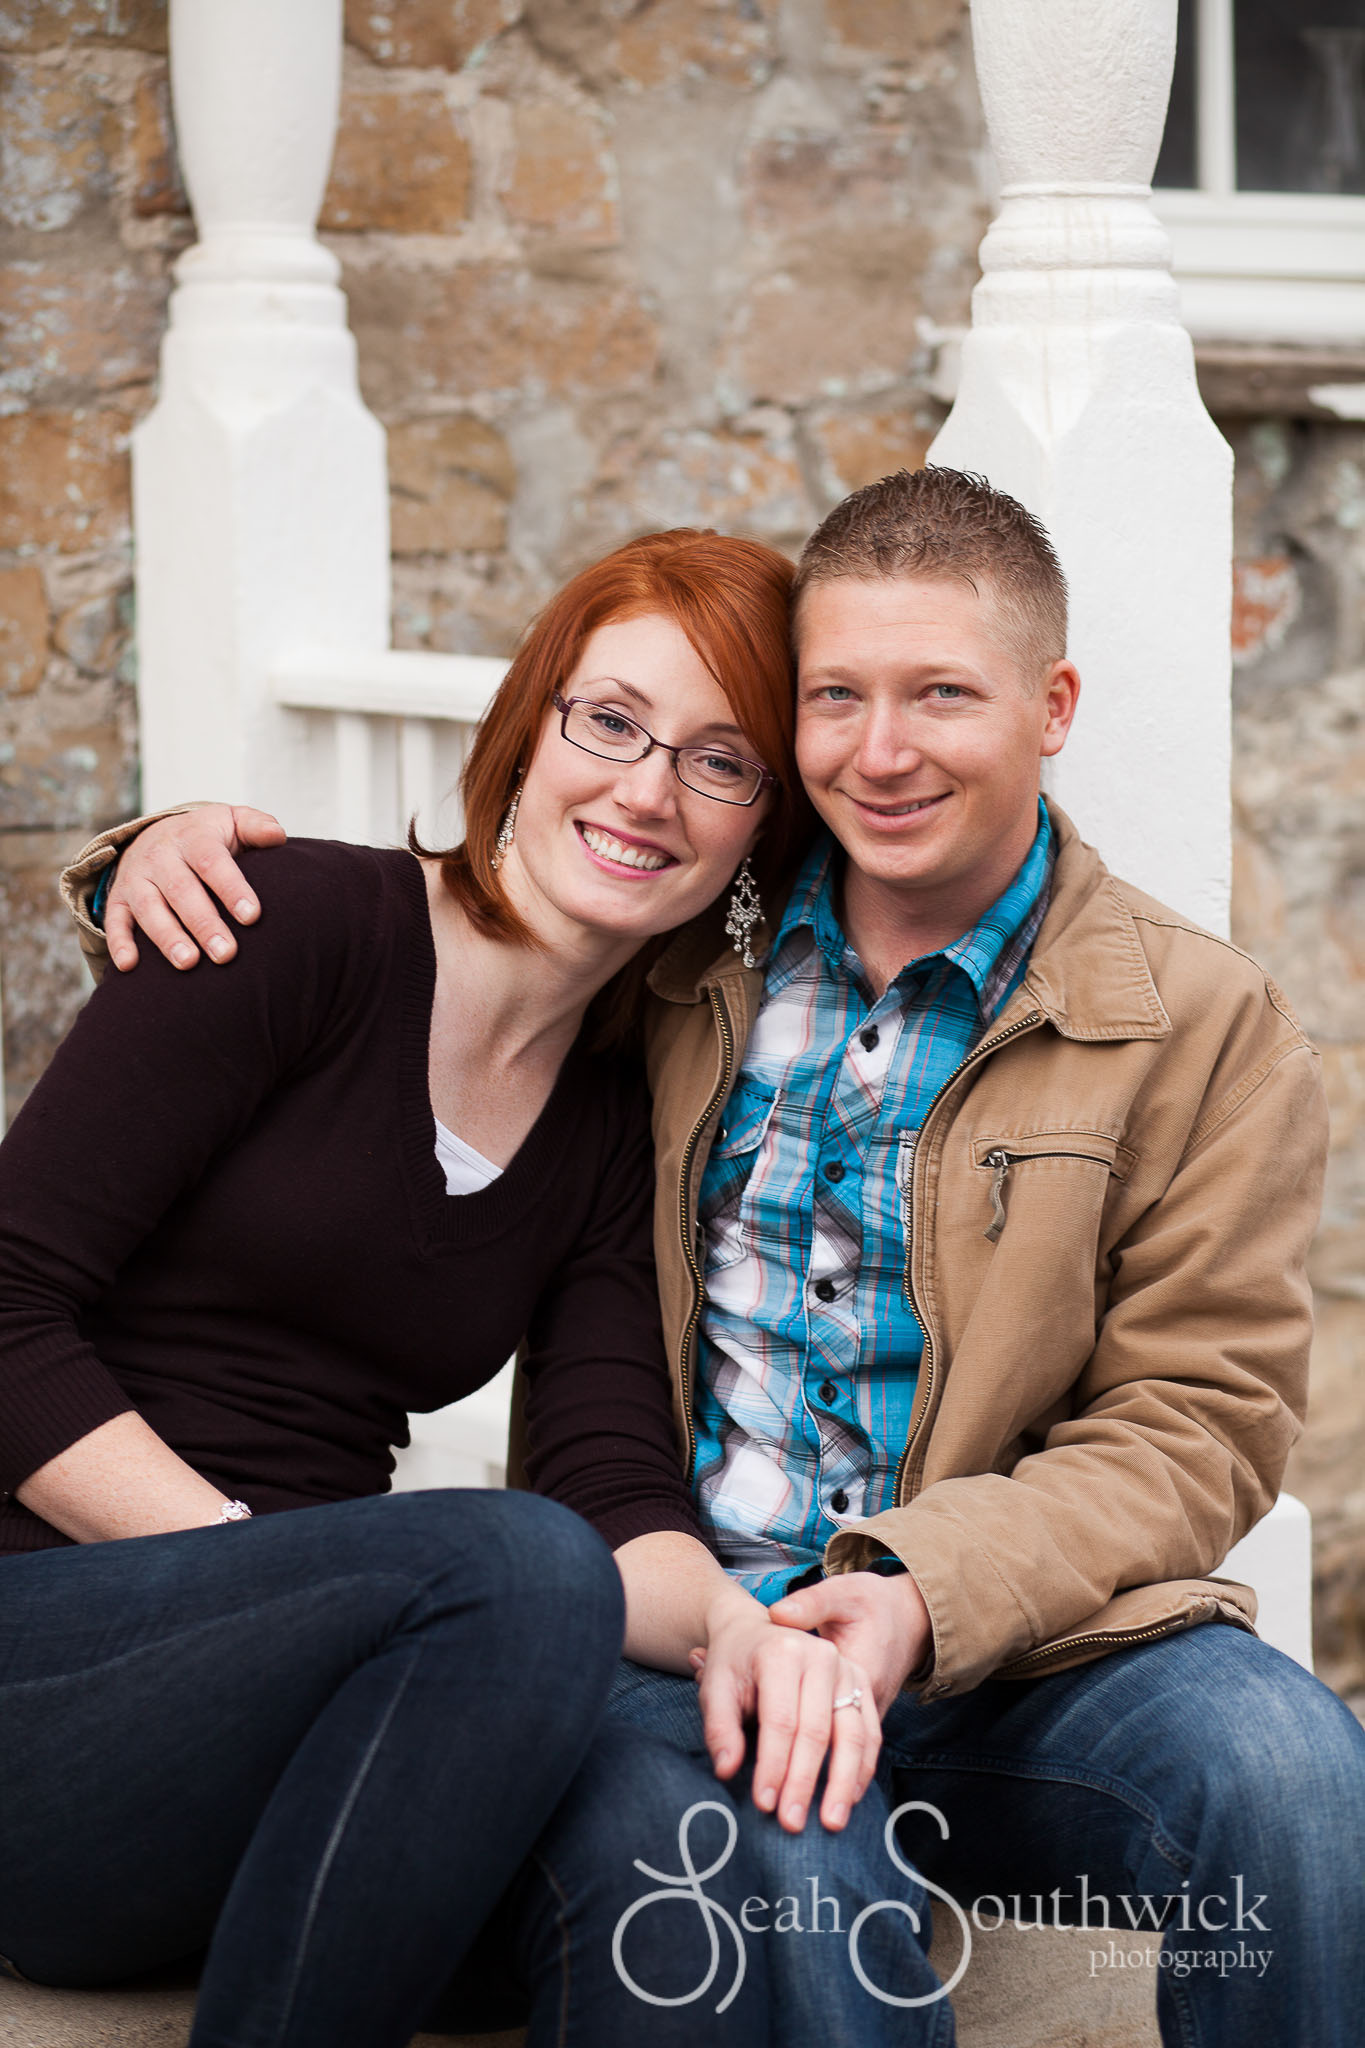 Engagement Photography Leah Southwick Photography-13.jpg